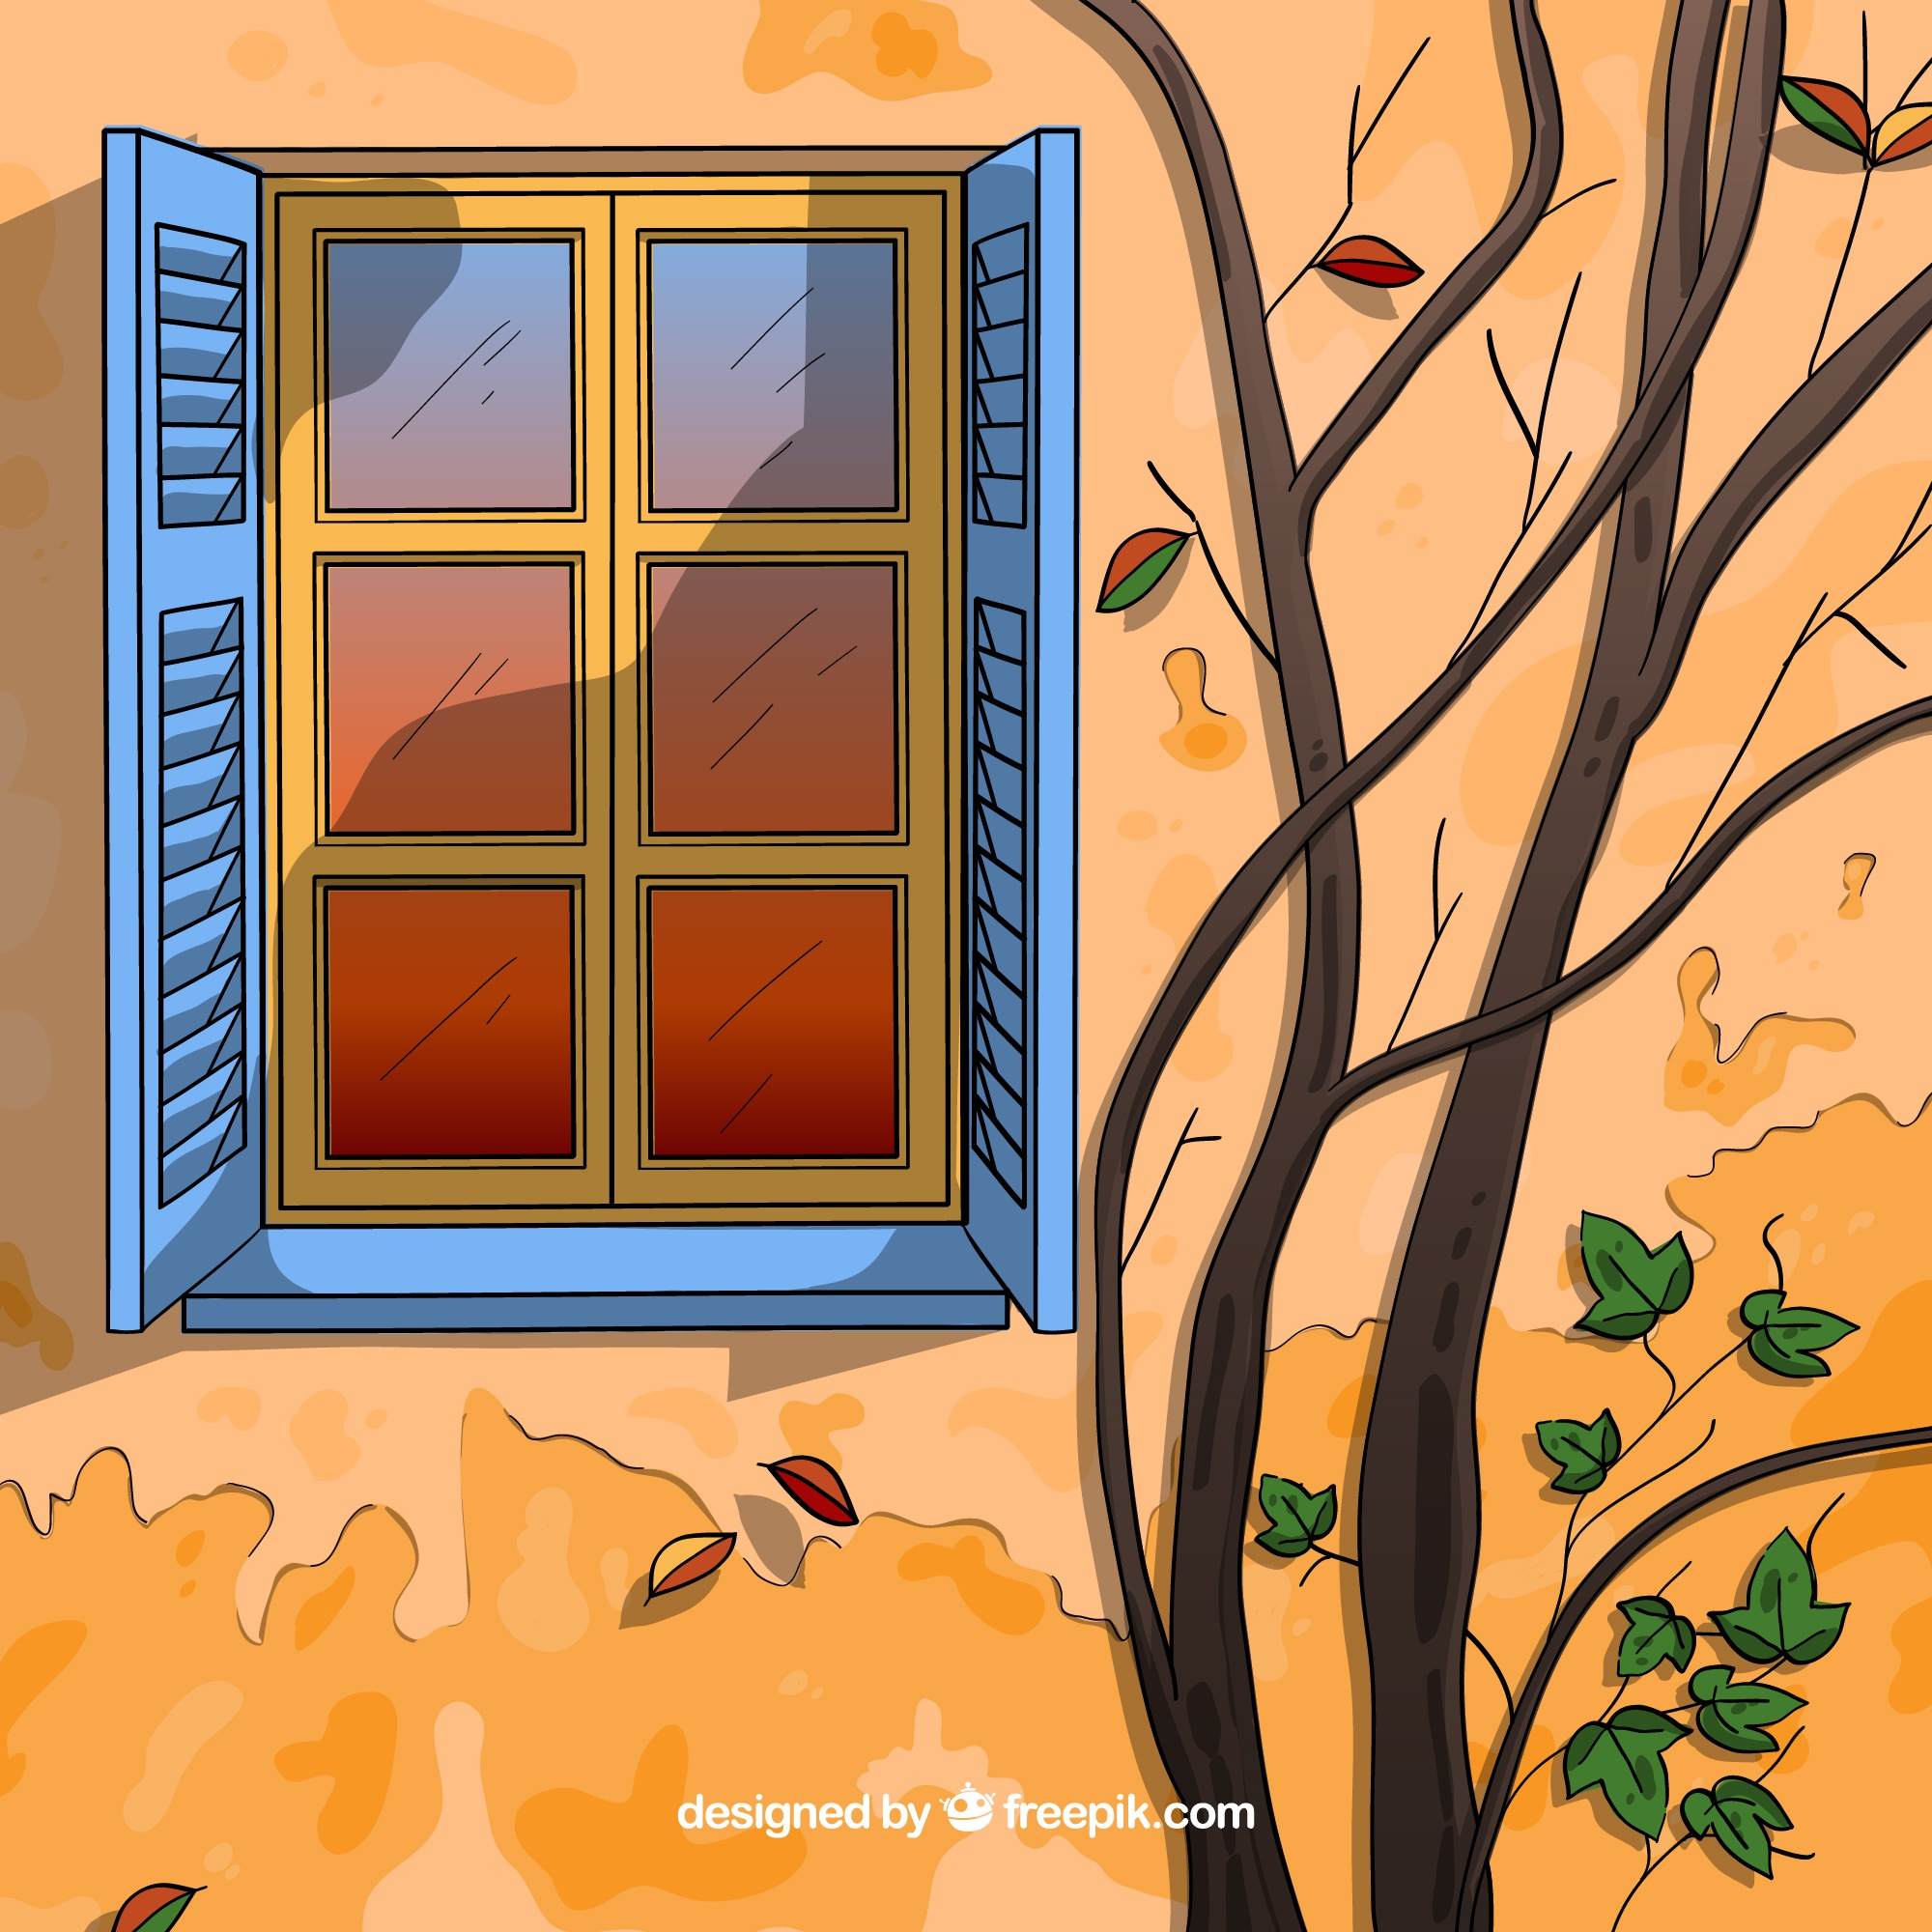 Autumn background with window and branches